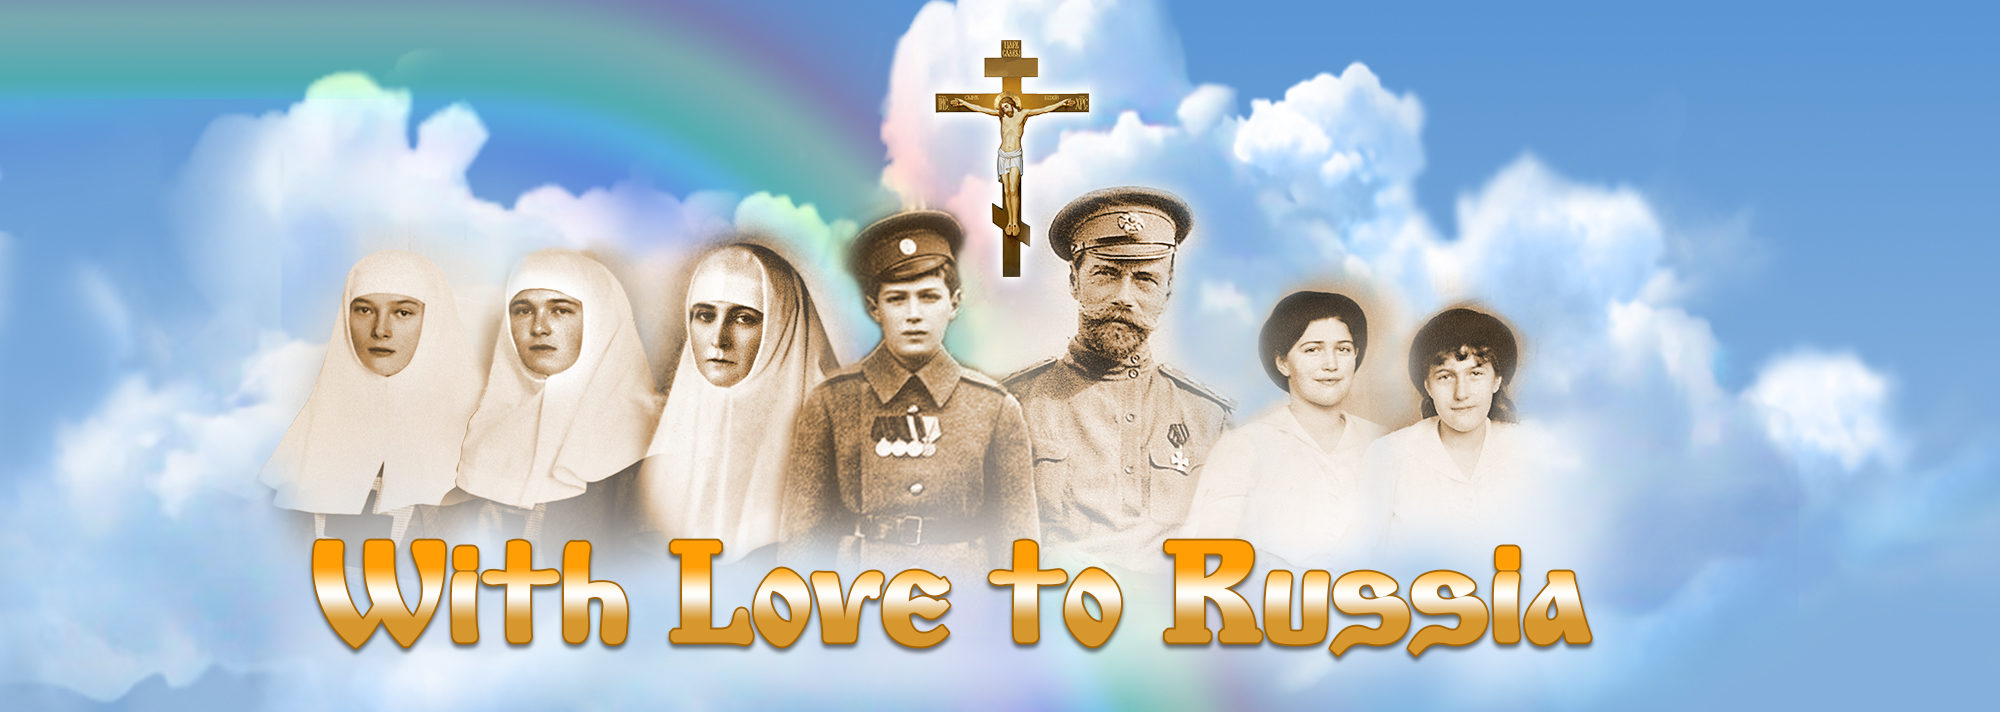 With Love to Russia